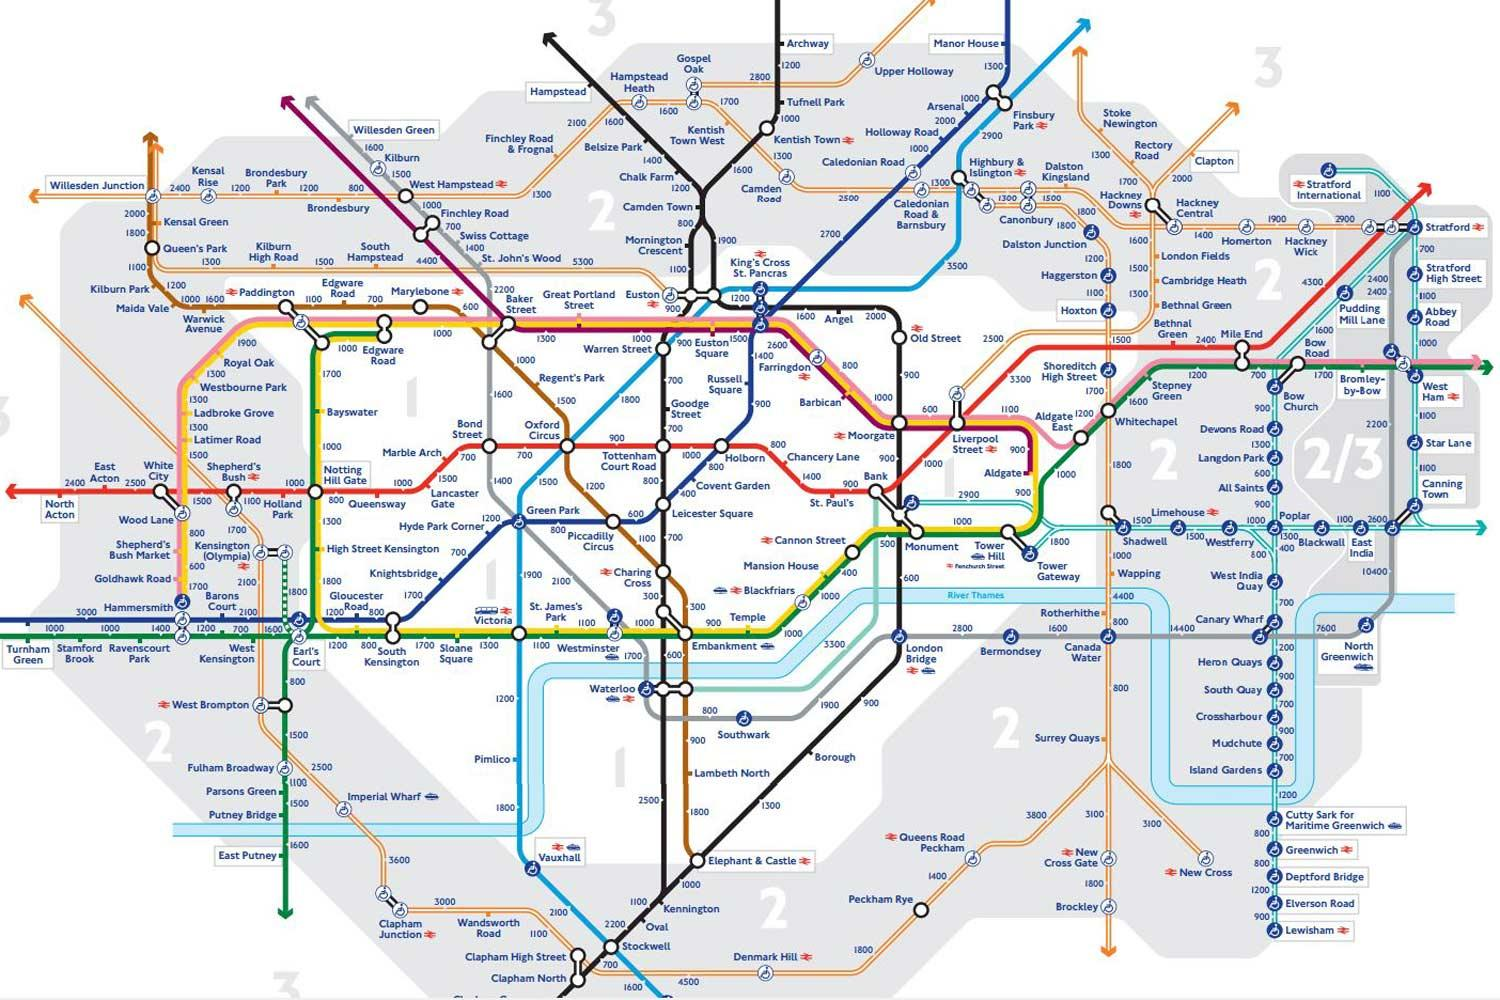 Tfl S Walk The Tube Map Shows Walking Distance Between